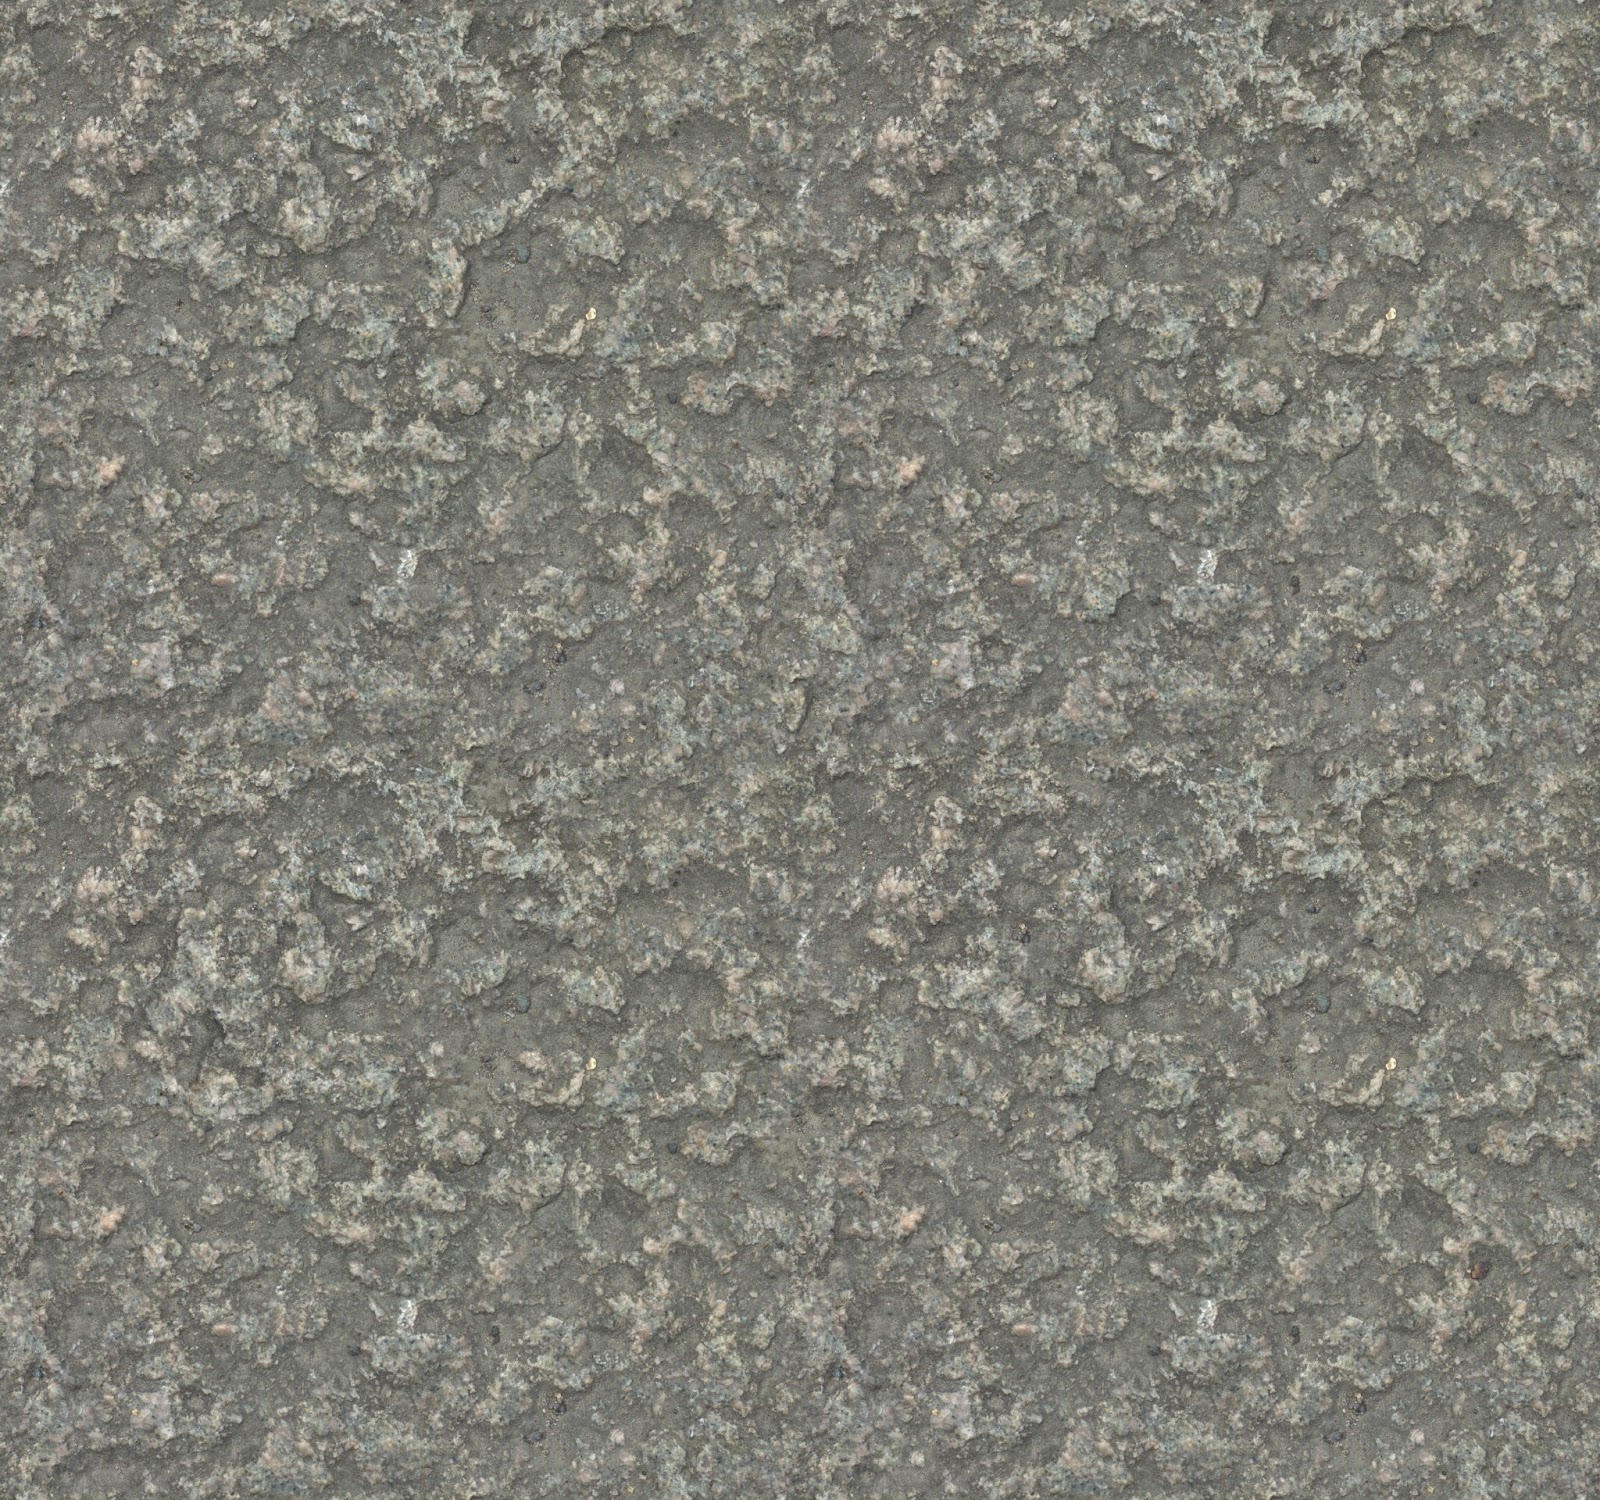 (CONCRETE 15) seamless floor granite texture 2048x2048